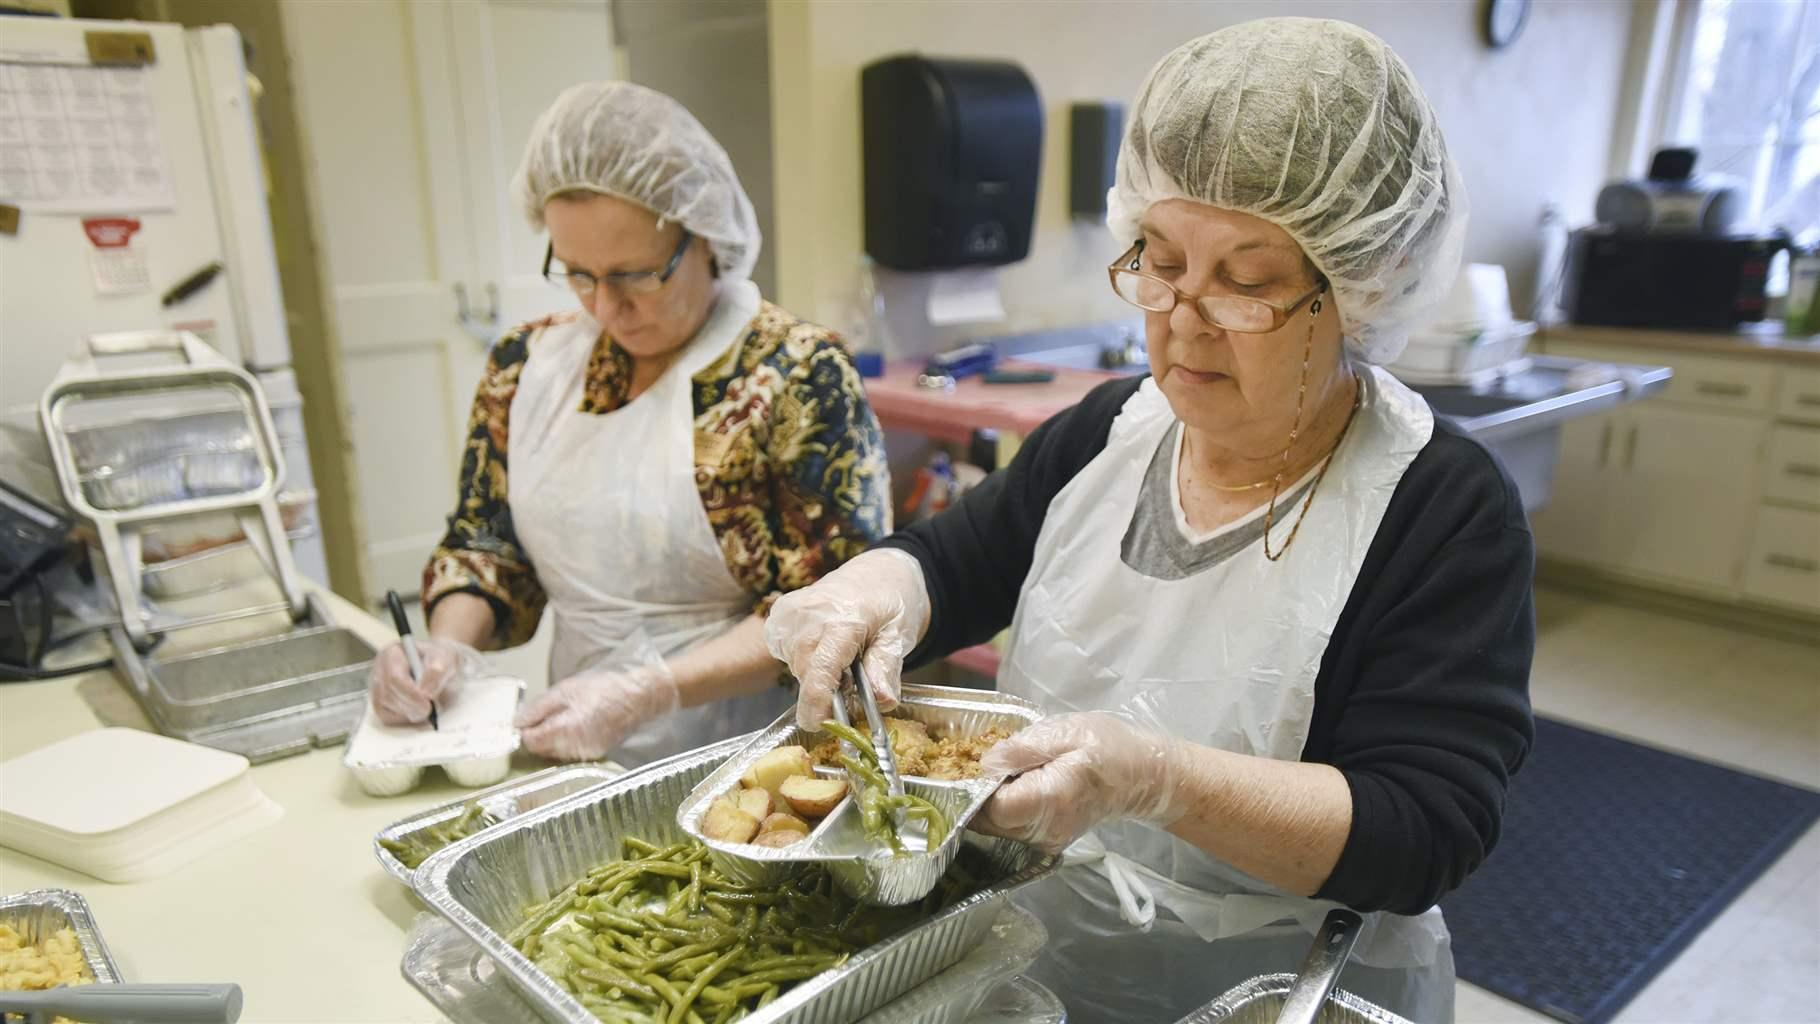 Rural areas hope to get more from national service programs...